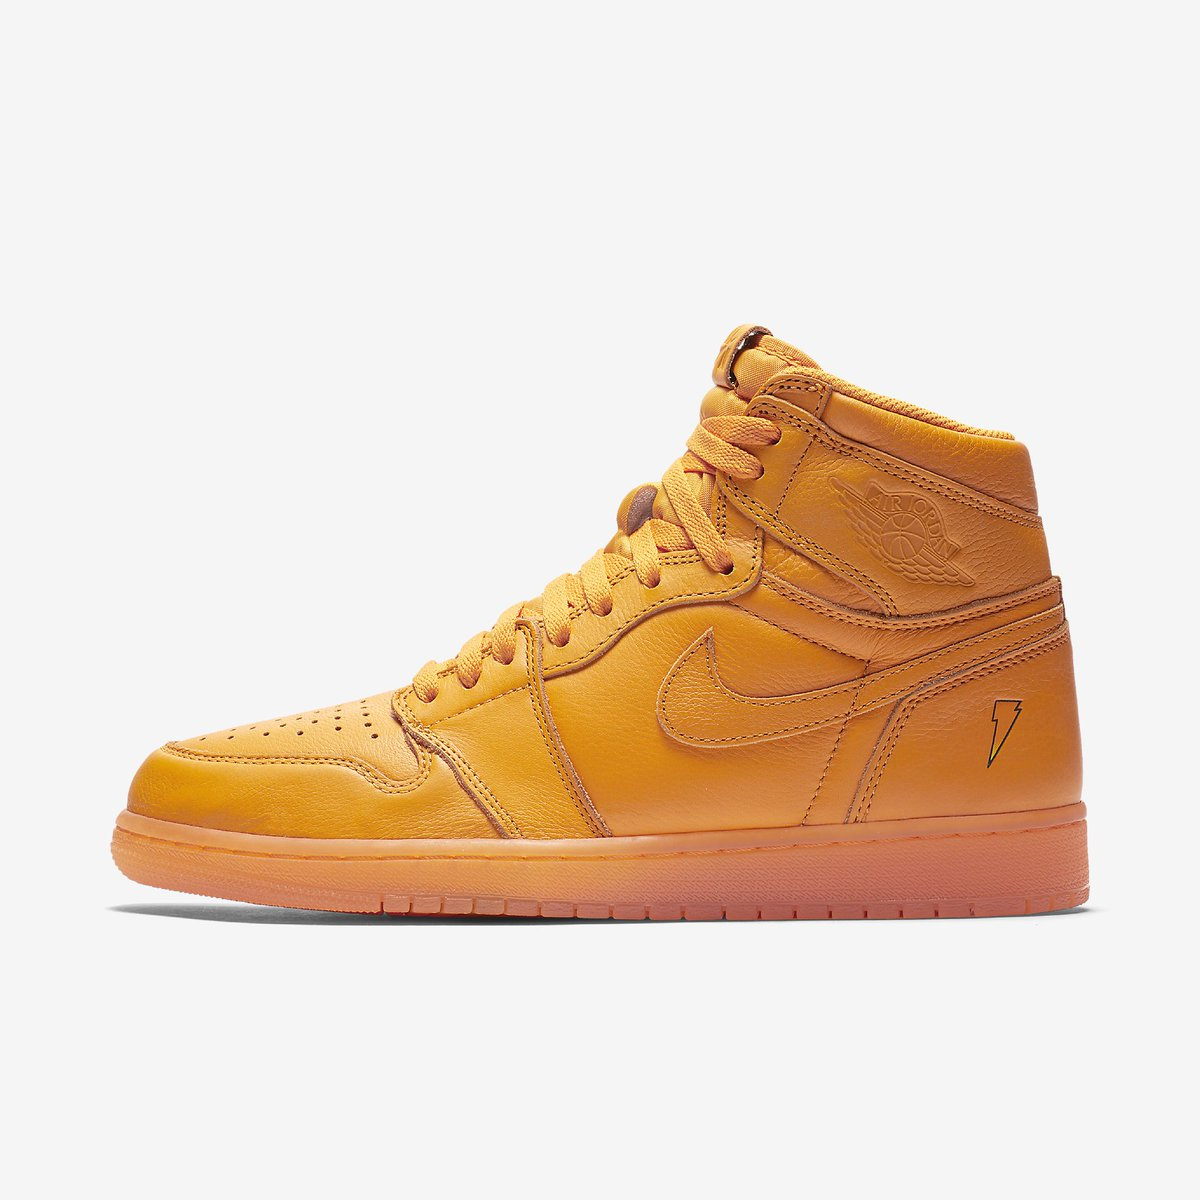 cc48c371a55f STEAL  Gatorade x Jordan 1 Retro High OG only  109.99 with FREE shipping on   ShoePalace. Use code 65J for  65 OFF Orange -  https   go.j23app.com 5w6  Blue ...